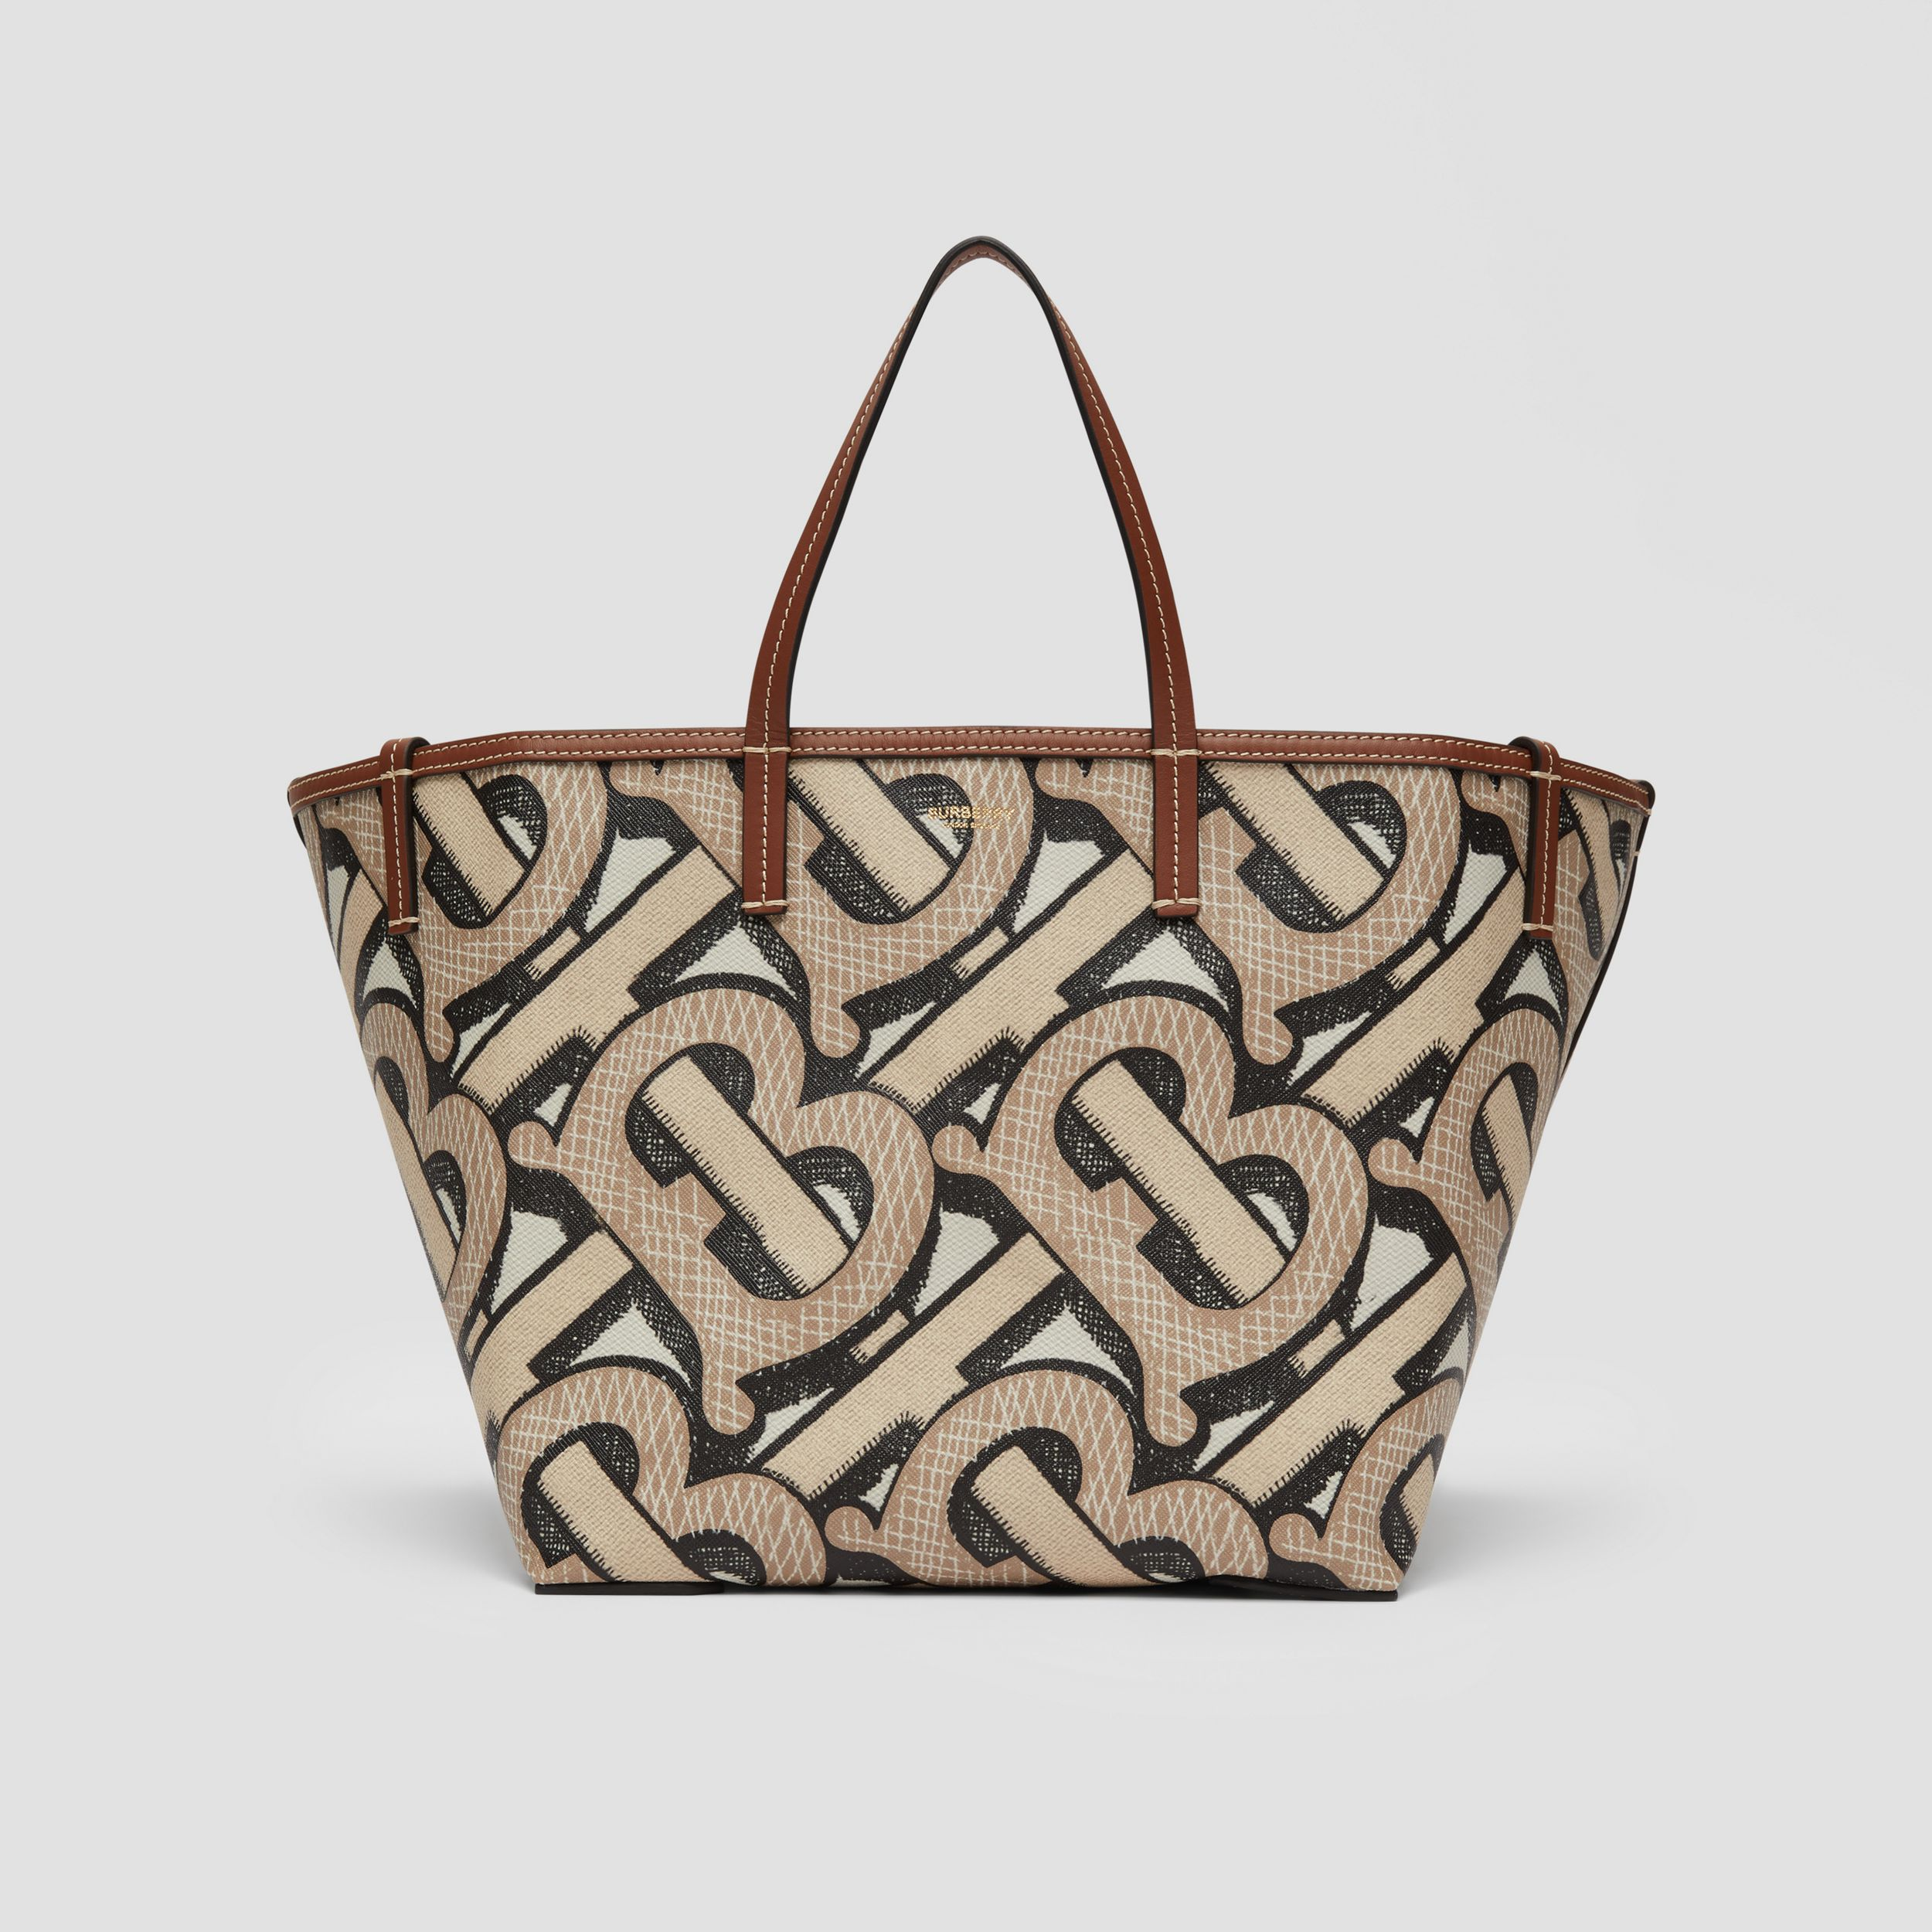 Mini Monogram Print E-canvas Beach Tote in Dark Beige | Burberry - 1